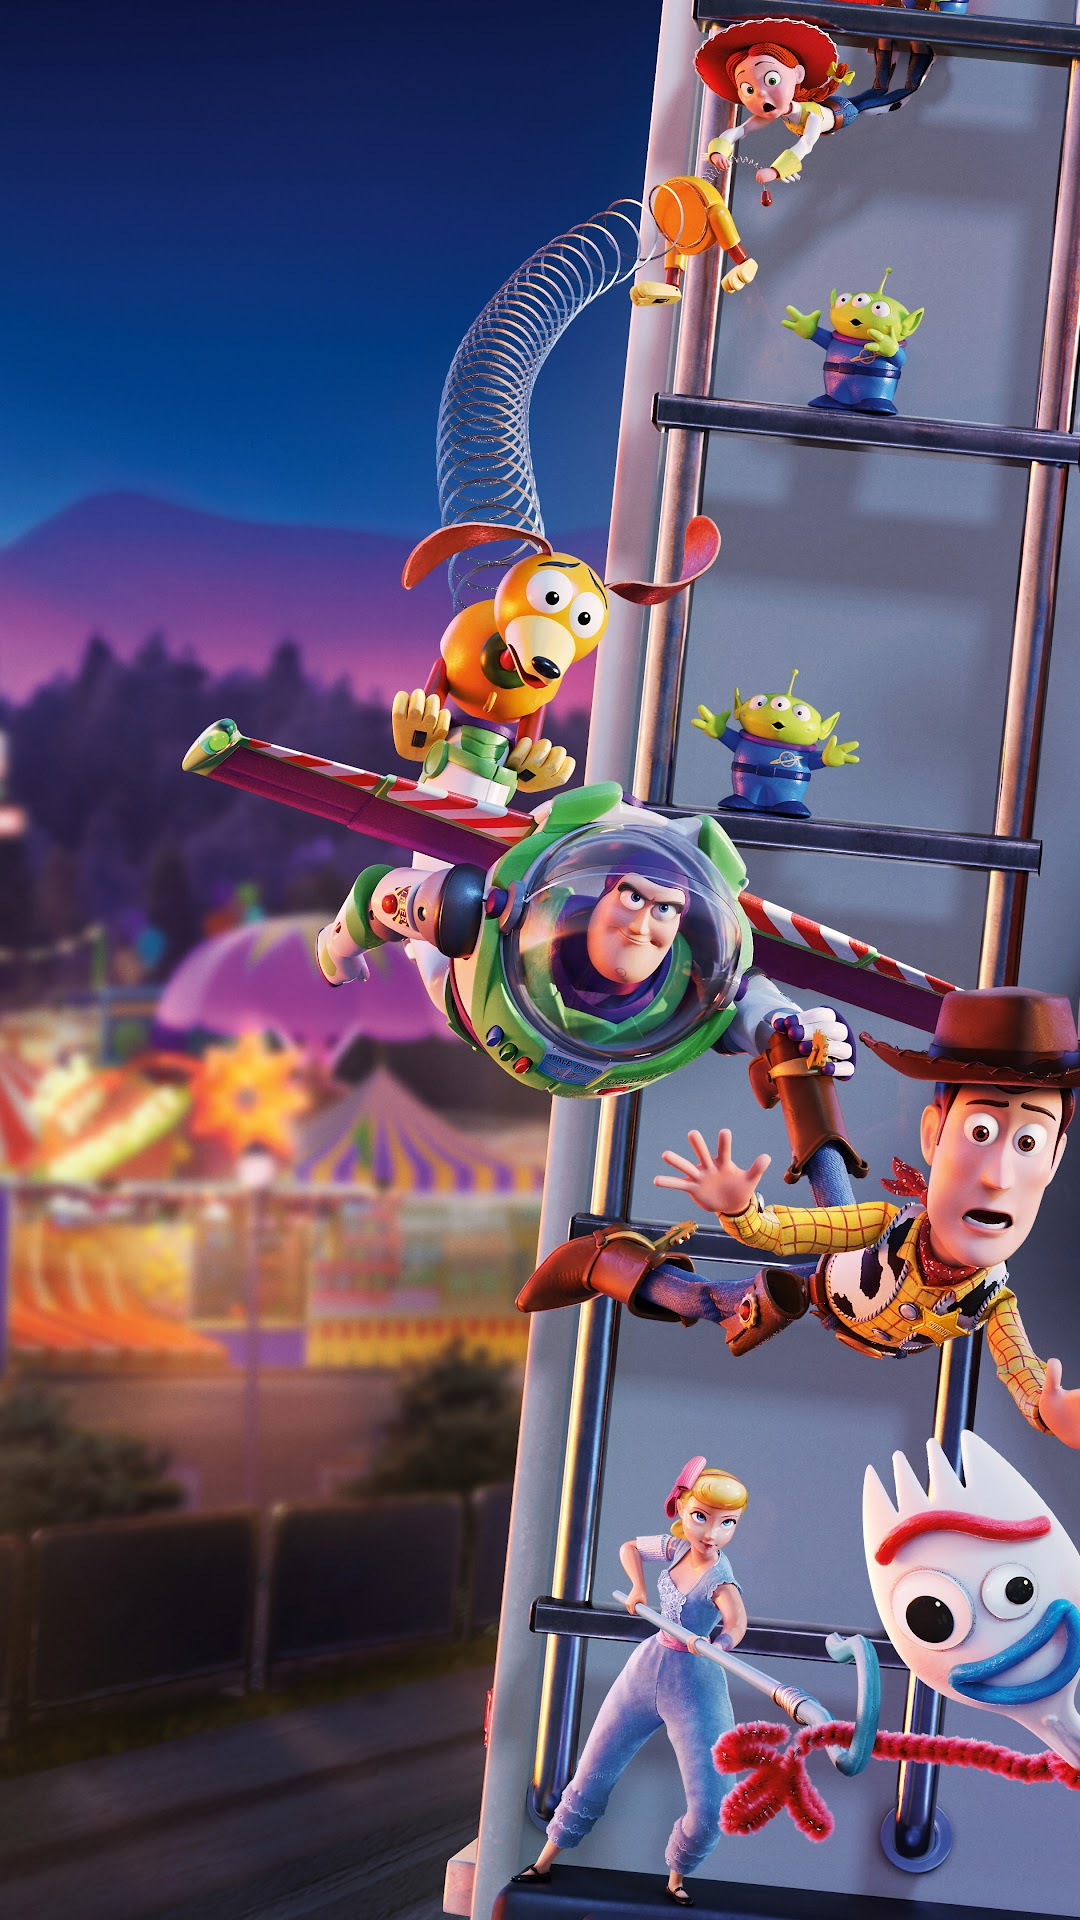 Toy Story 4 Characters 8k Wallpaper 14